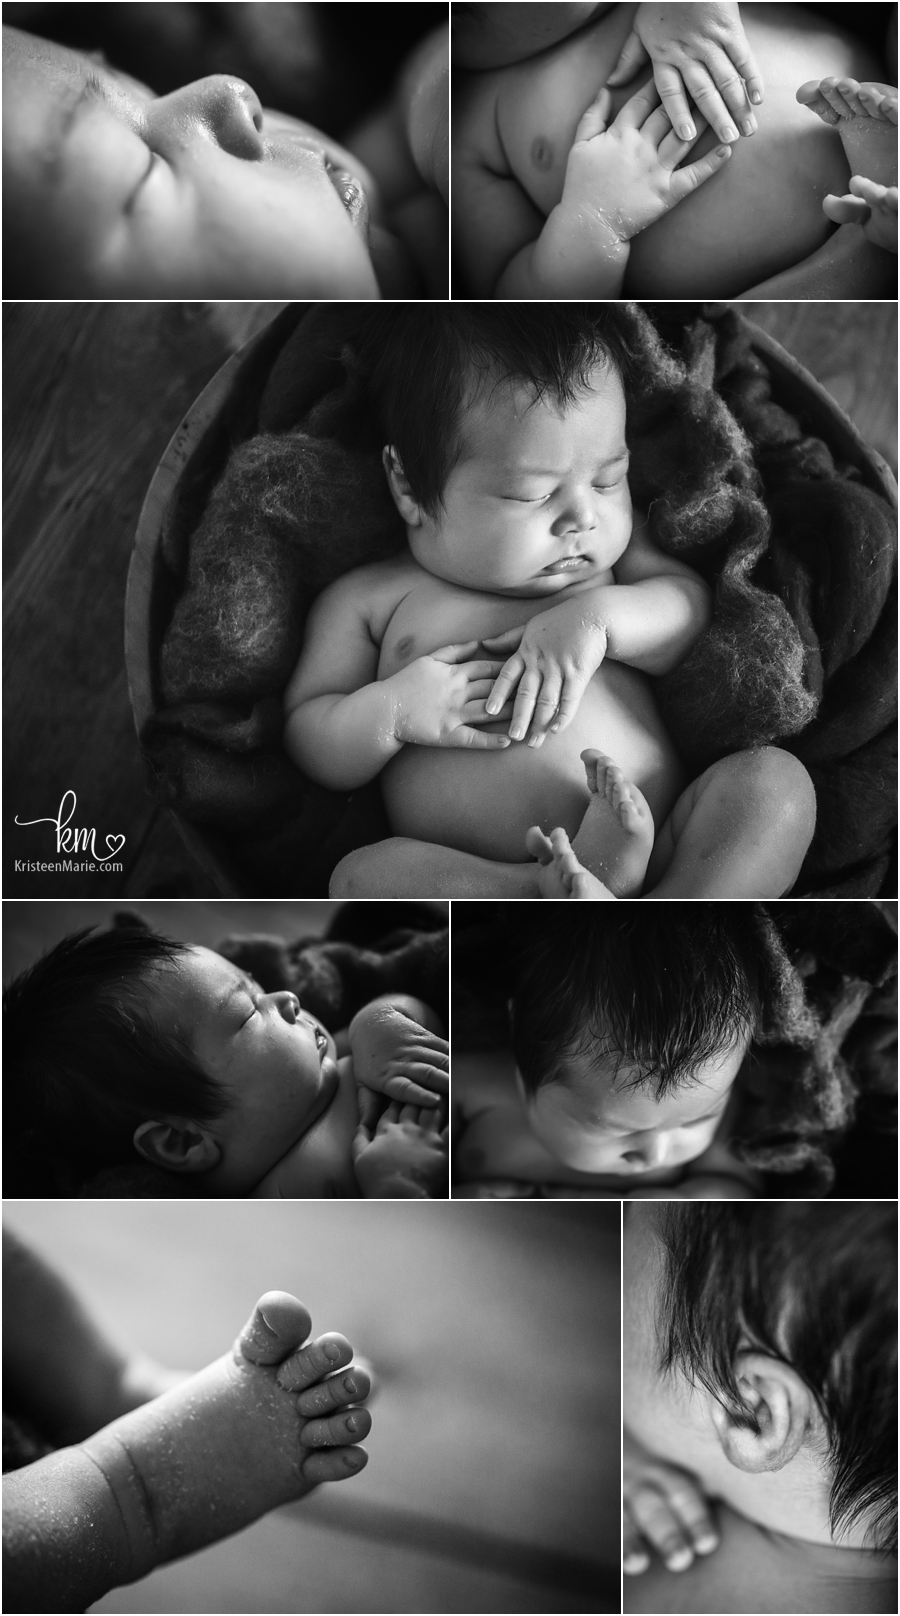 black and white baby features - hands, toes, fingers, feet, ears, and nose. Love those baby macro shots!